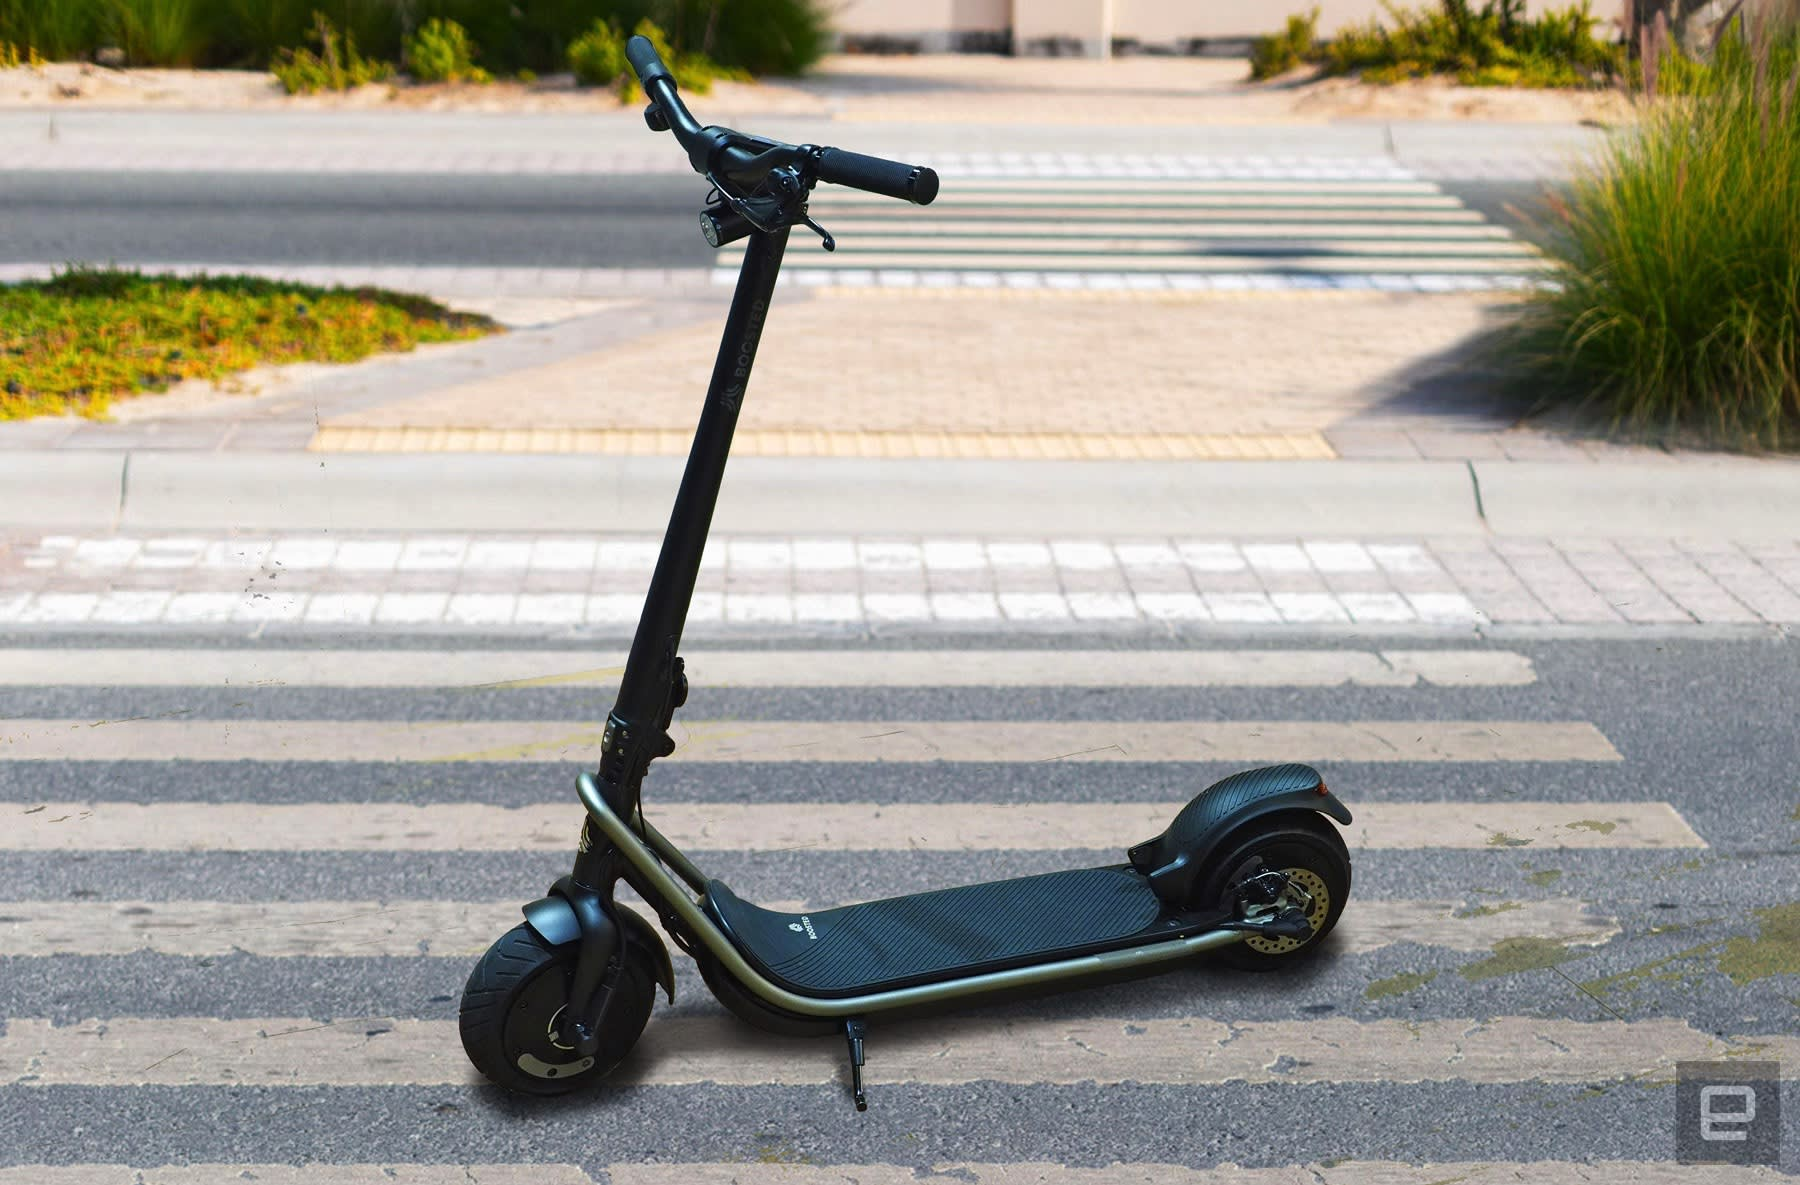 Boosted's next electric ride is the Rev scooter